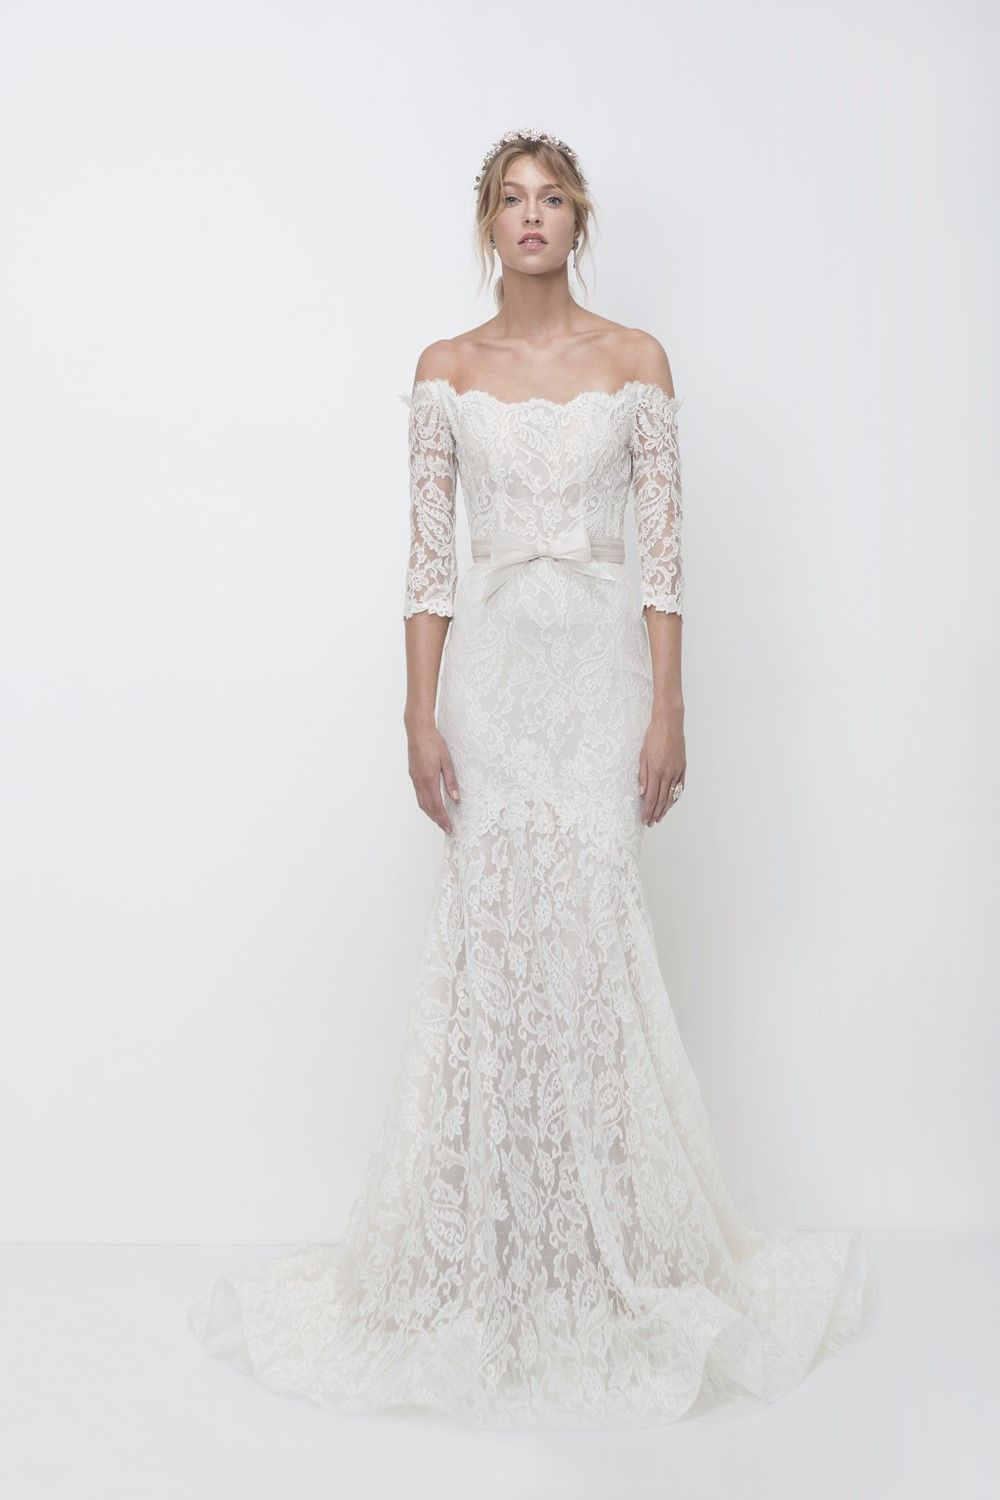 A whiter shade of pale lihi hodus bridal collection bridal